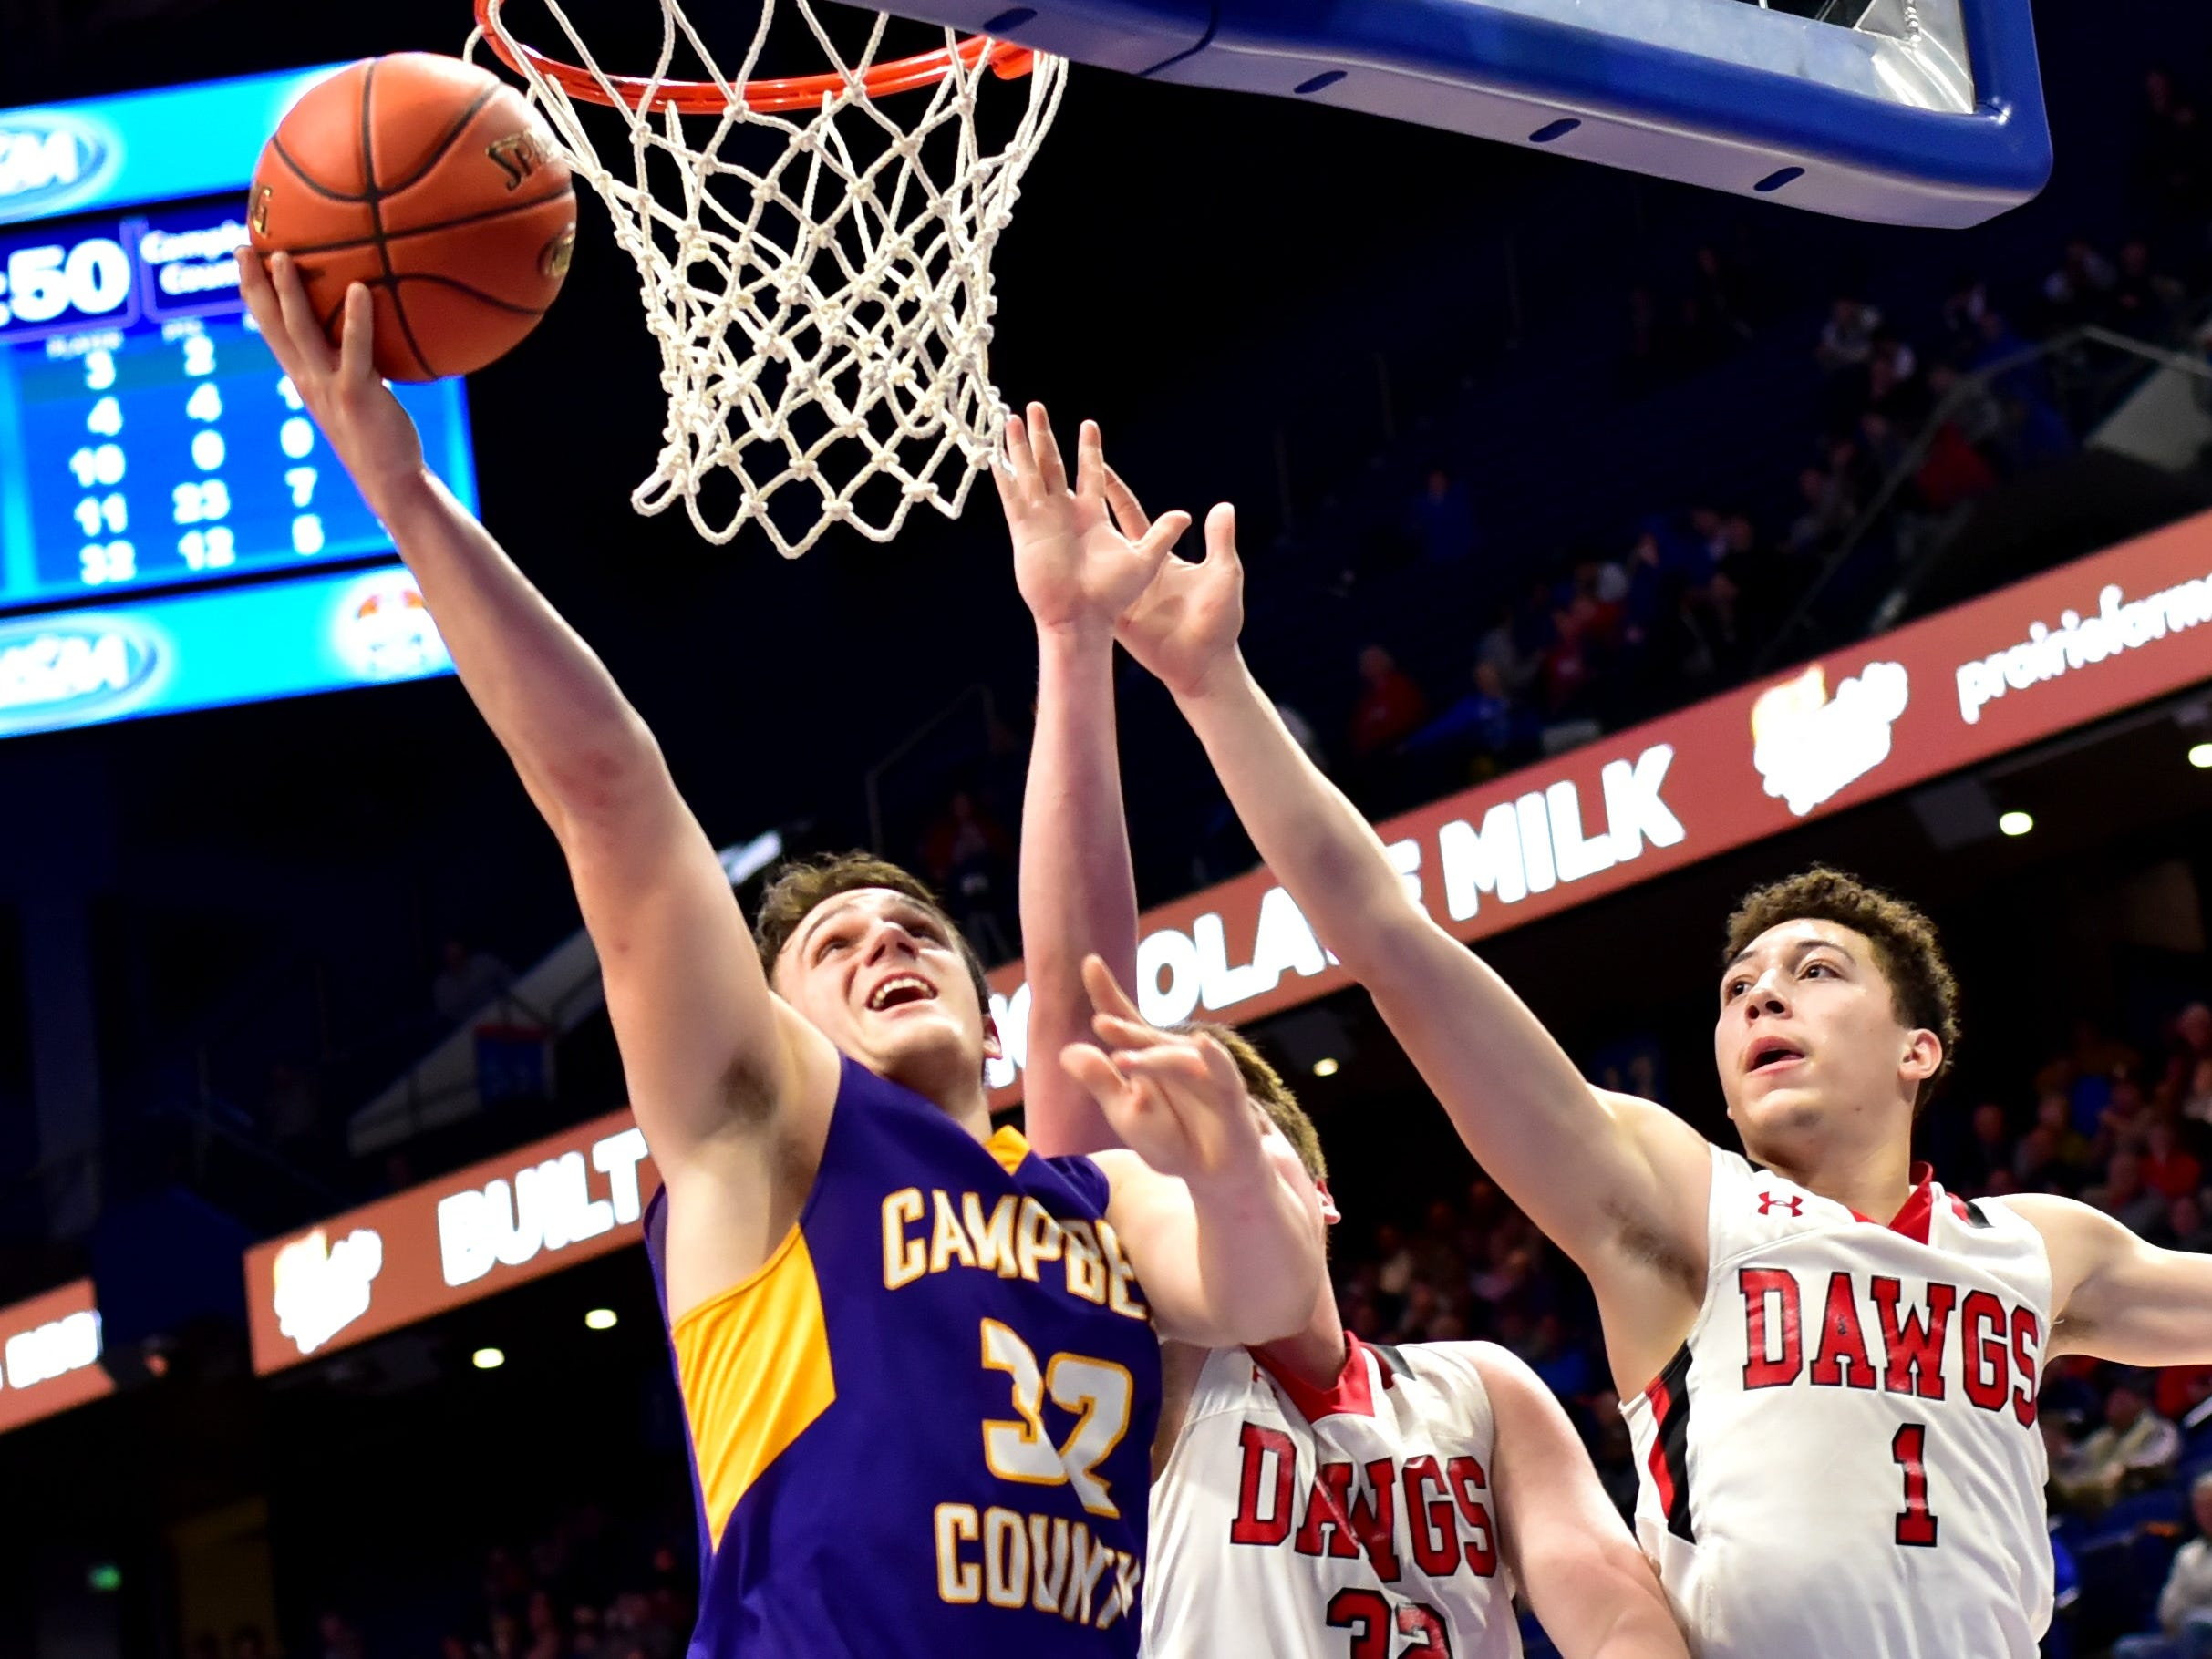 Tanner Lawrence (32) of Campbell County drops in a backdoor layup off of an offensive rebound for the Camels at the KHSAA Sweet 16 Tournament at Rupp Arena in Lexington, KY, March 6, 2019